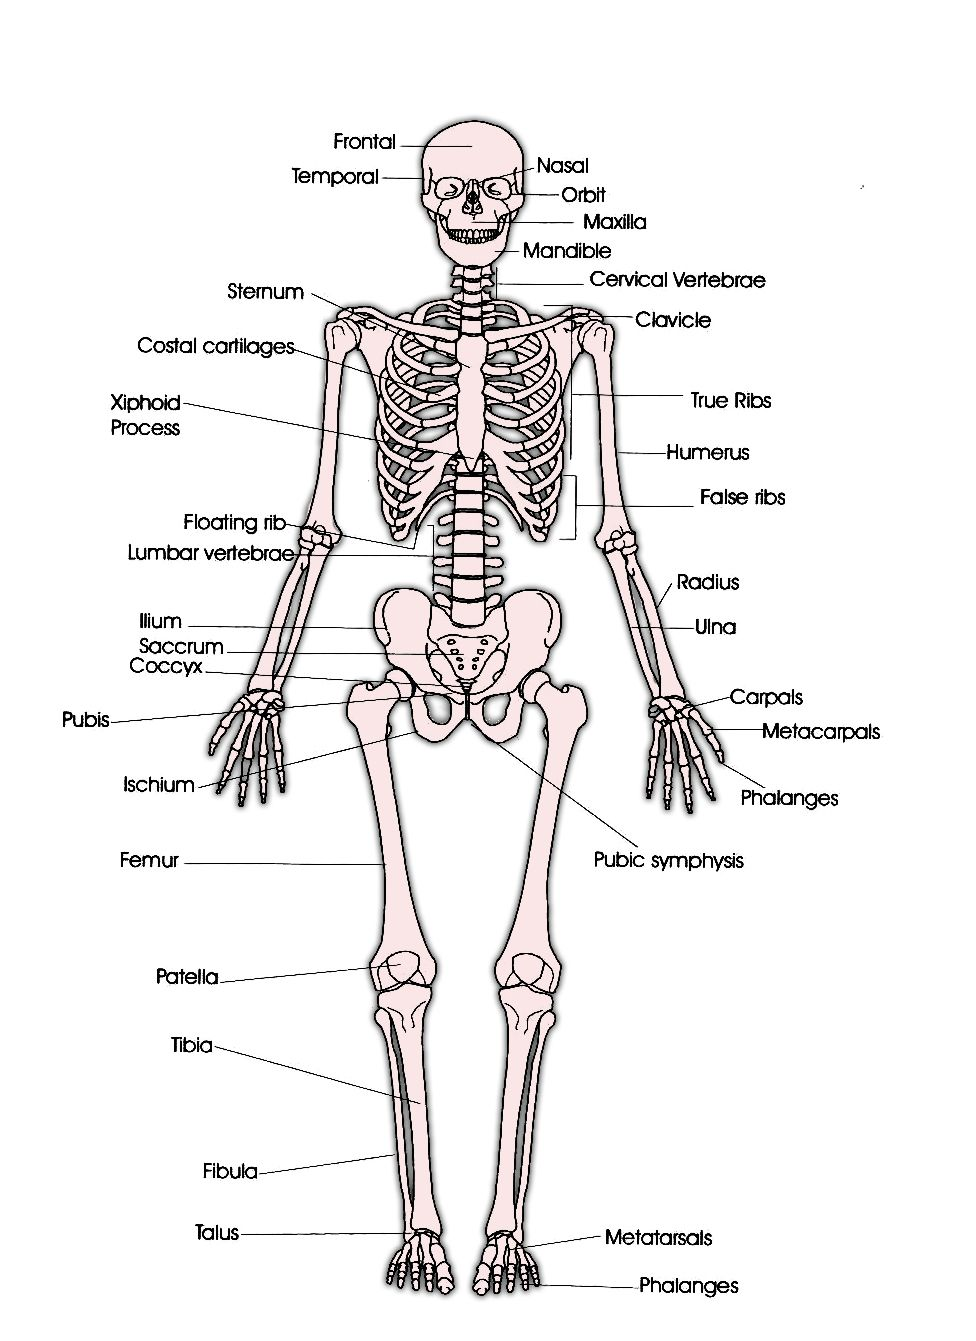 Skeletal system labeled diagrams human skeleton the skeletal skeletal system labeled diagrams human skeleton the skeletal system includes all of the bones ccuart Image collections